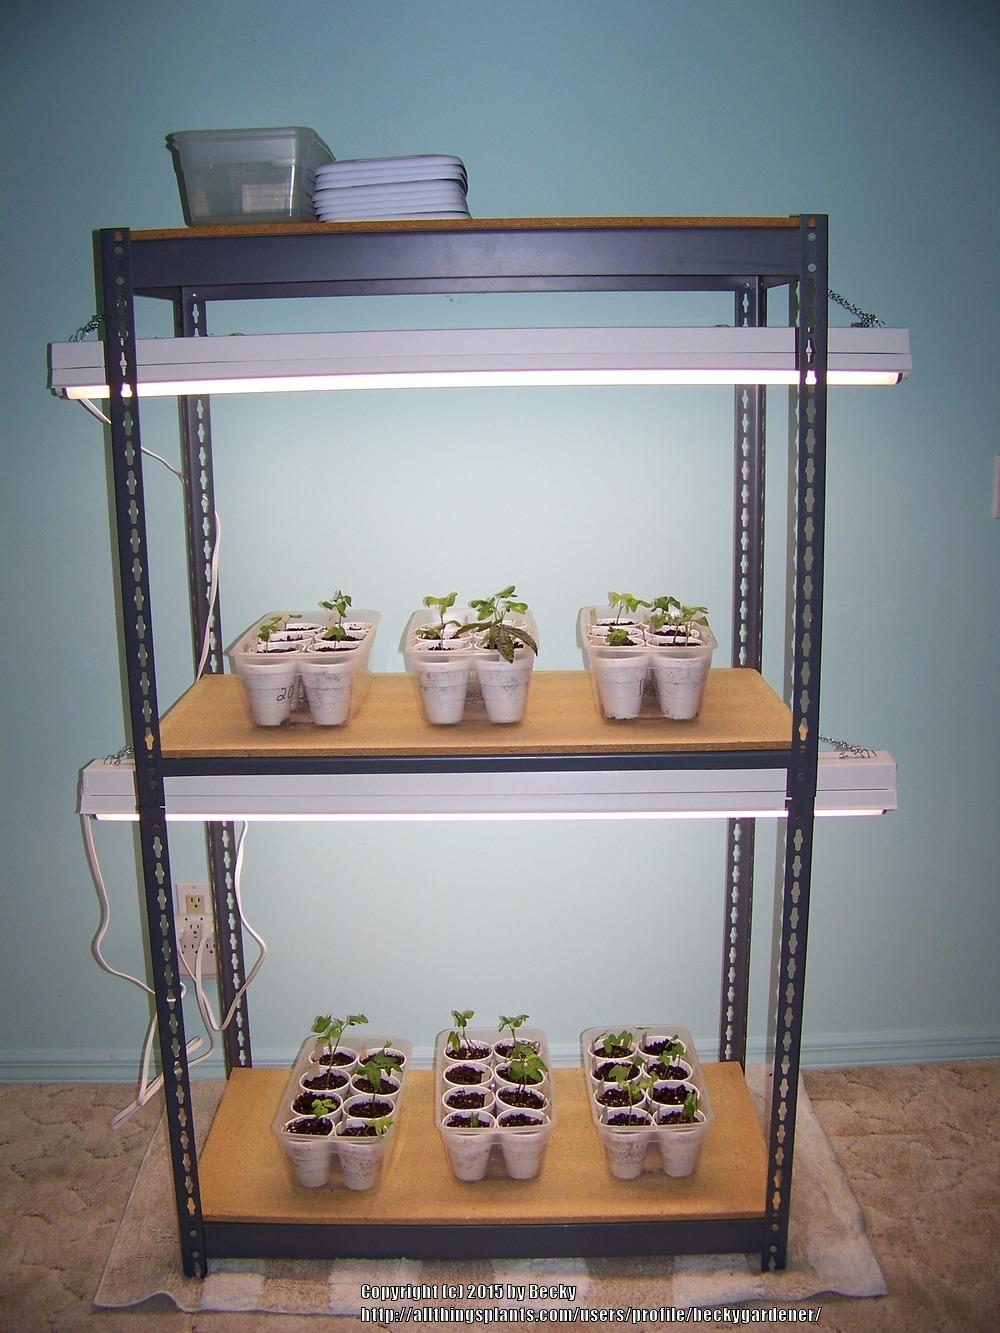 Create Your Own Grow-light Shelving Unit